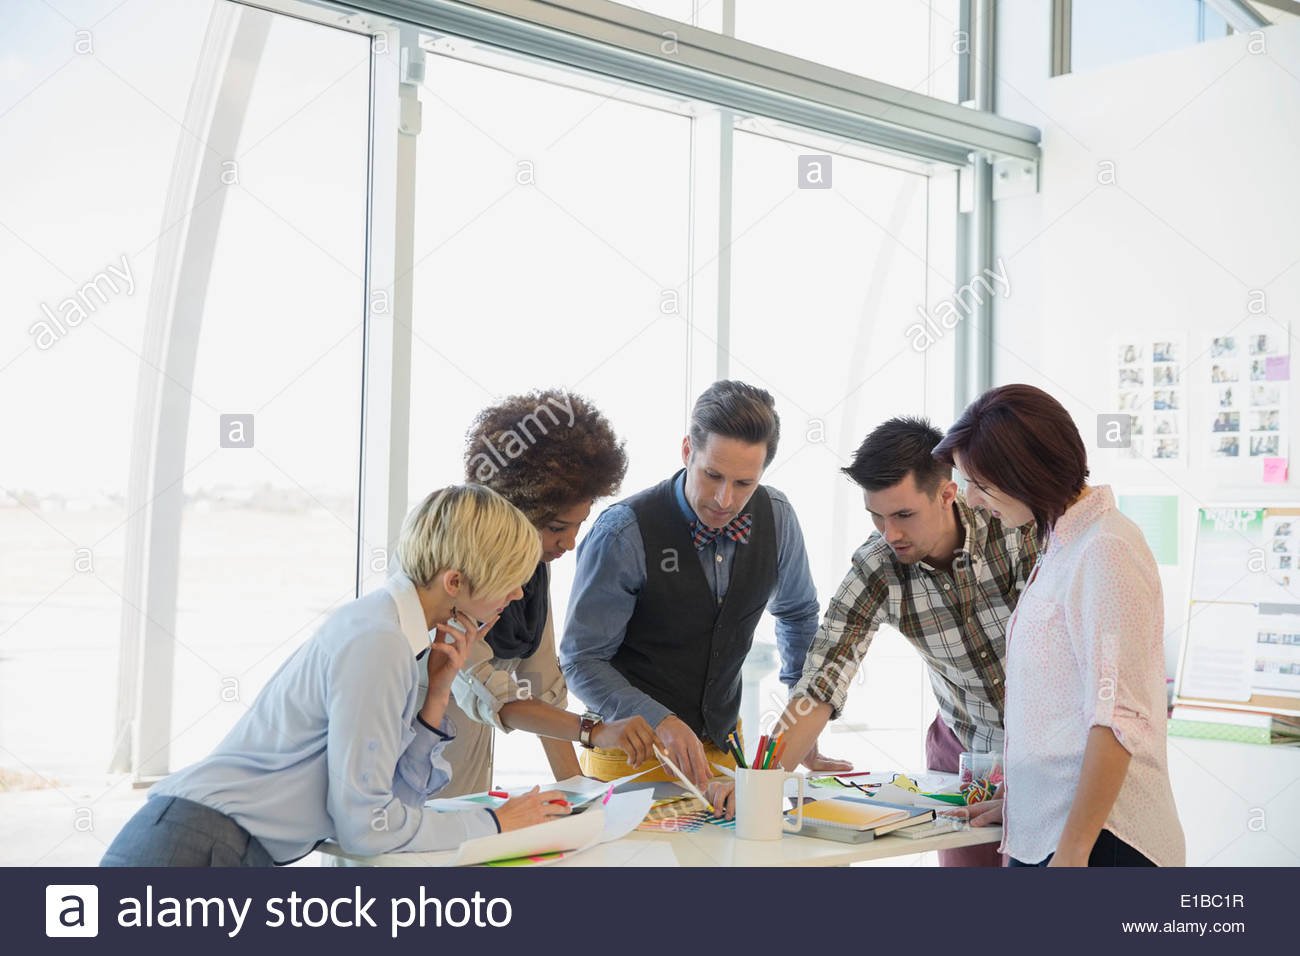 Creative business people in office Photo Stock